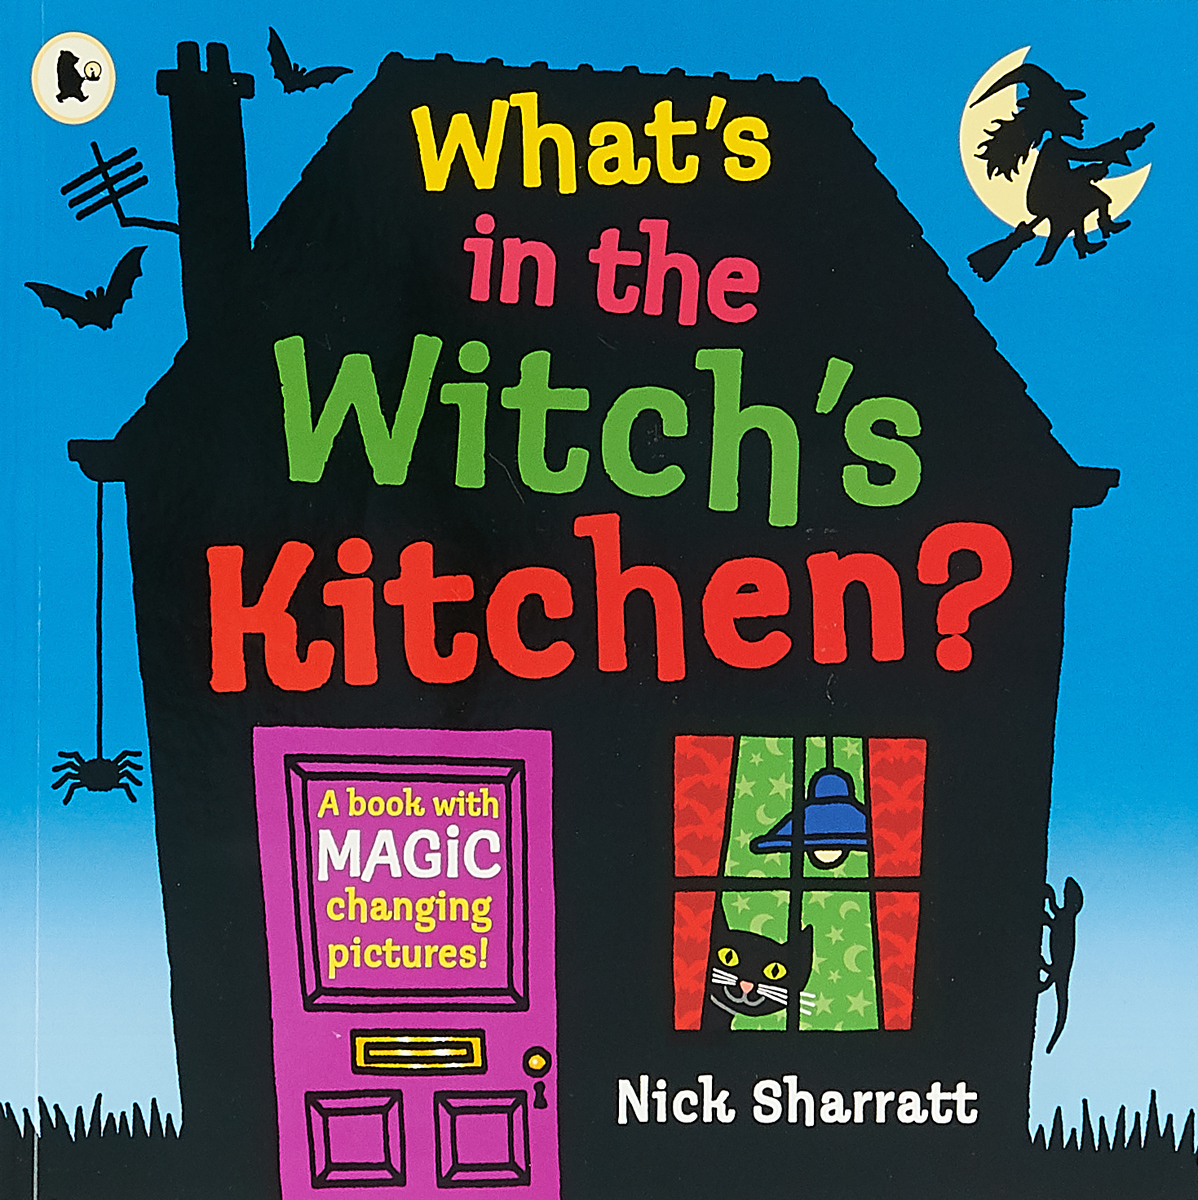 WHAT'S IN THE WITCH'S KITCHEN? fashion 2016 pumpkin halloween children outfit clothes cap kids designer children clothing party ld ourlove